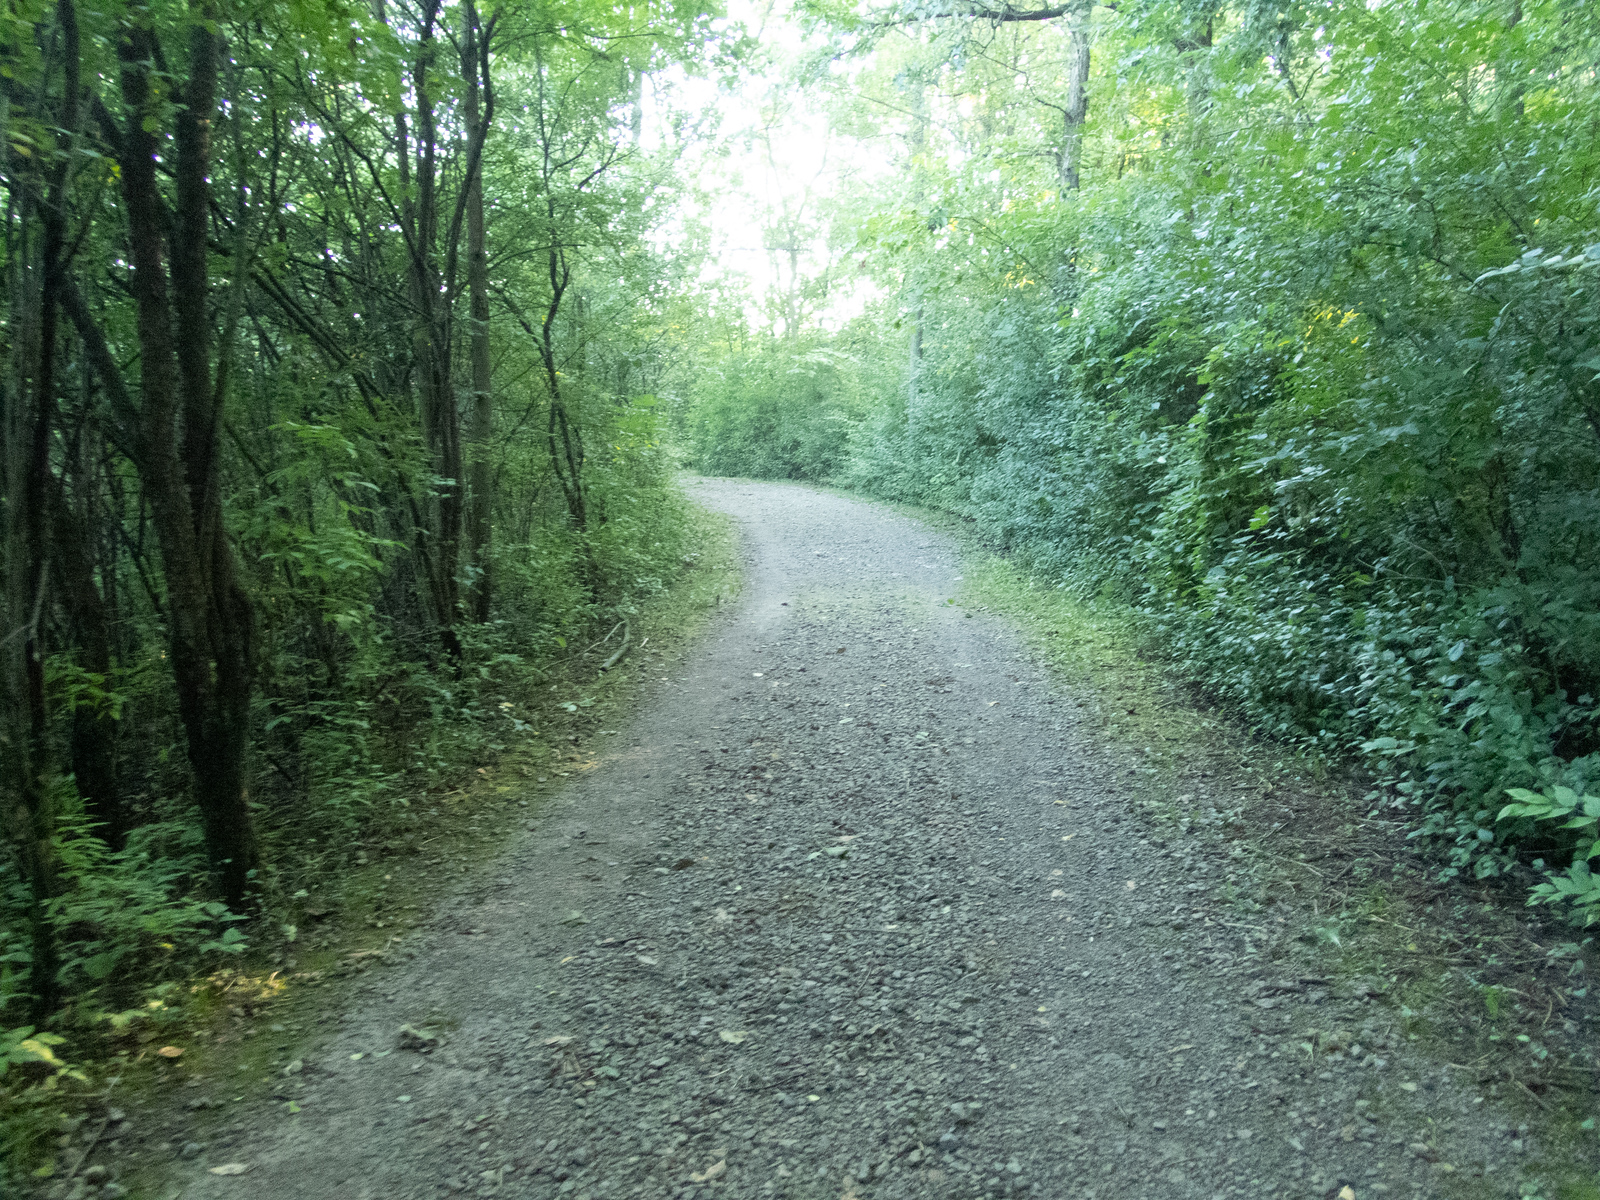 Lillie Park path